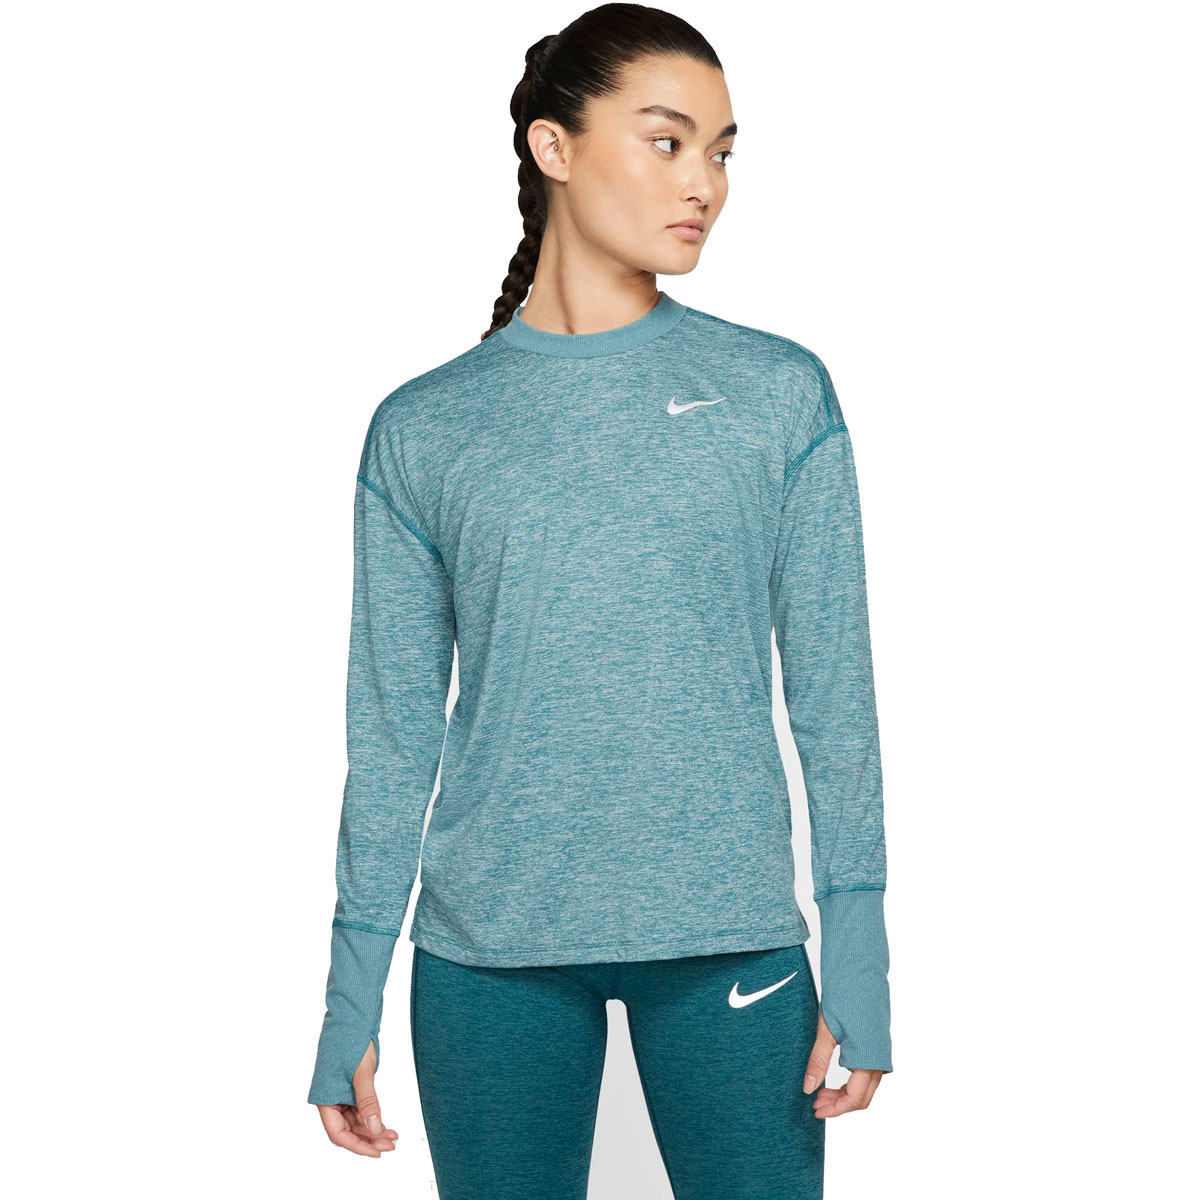 Women's Nike Element Running Top - Color: Mineral Teal/Htr/Reflective Silver - Size: S, Mineral Teal/Htr/Reflective Silver, large, image 1